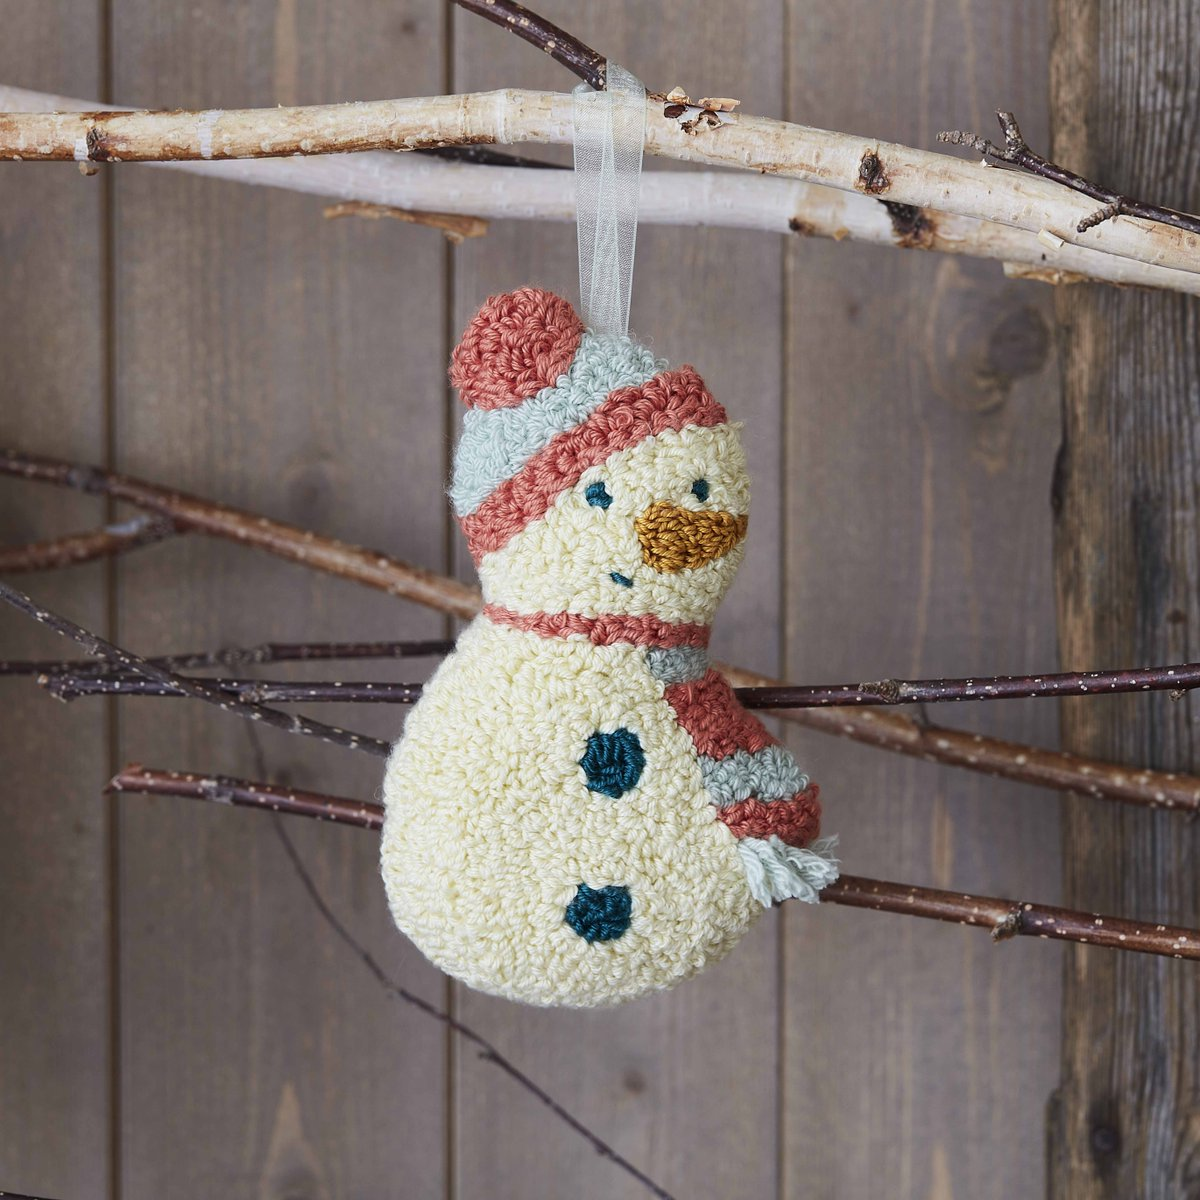 This super cute punch needle snowman is sure to add a touch of charm to your Christmas.  Check out the free templates and a step-by-step tutorial: https://t.co/uTiAZSXlNY   #CraftTogether #PunchNeedle #Hobbycraft https://t.co/mAkBoziSaR